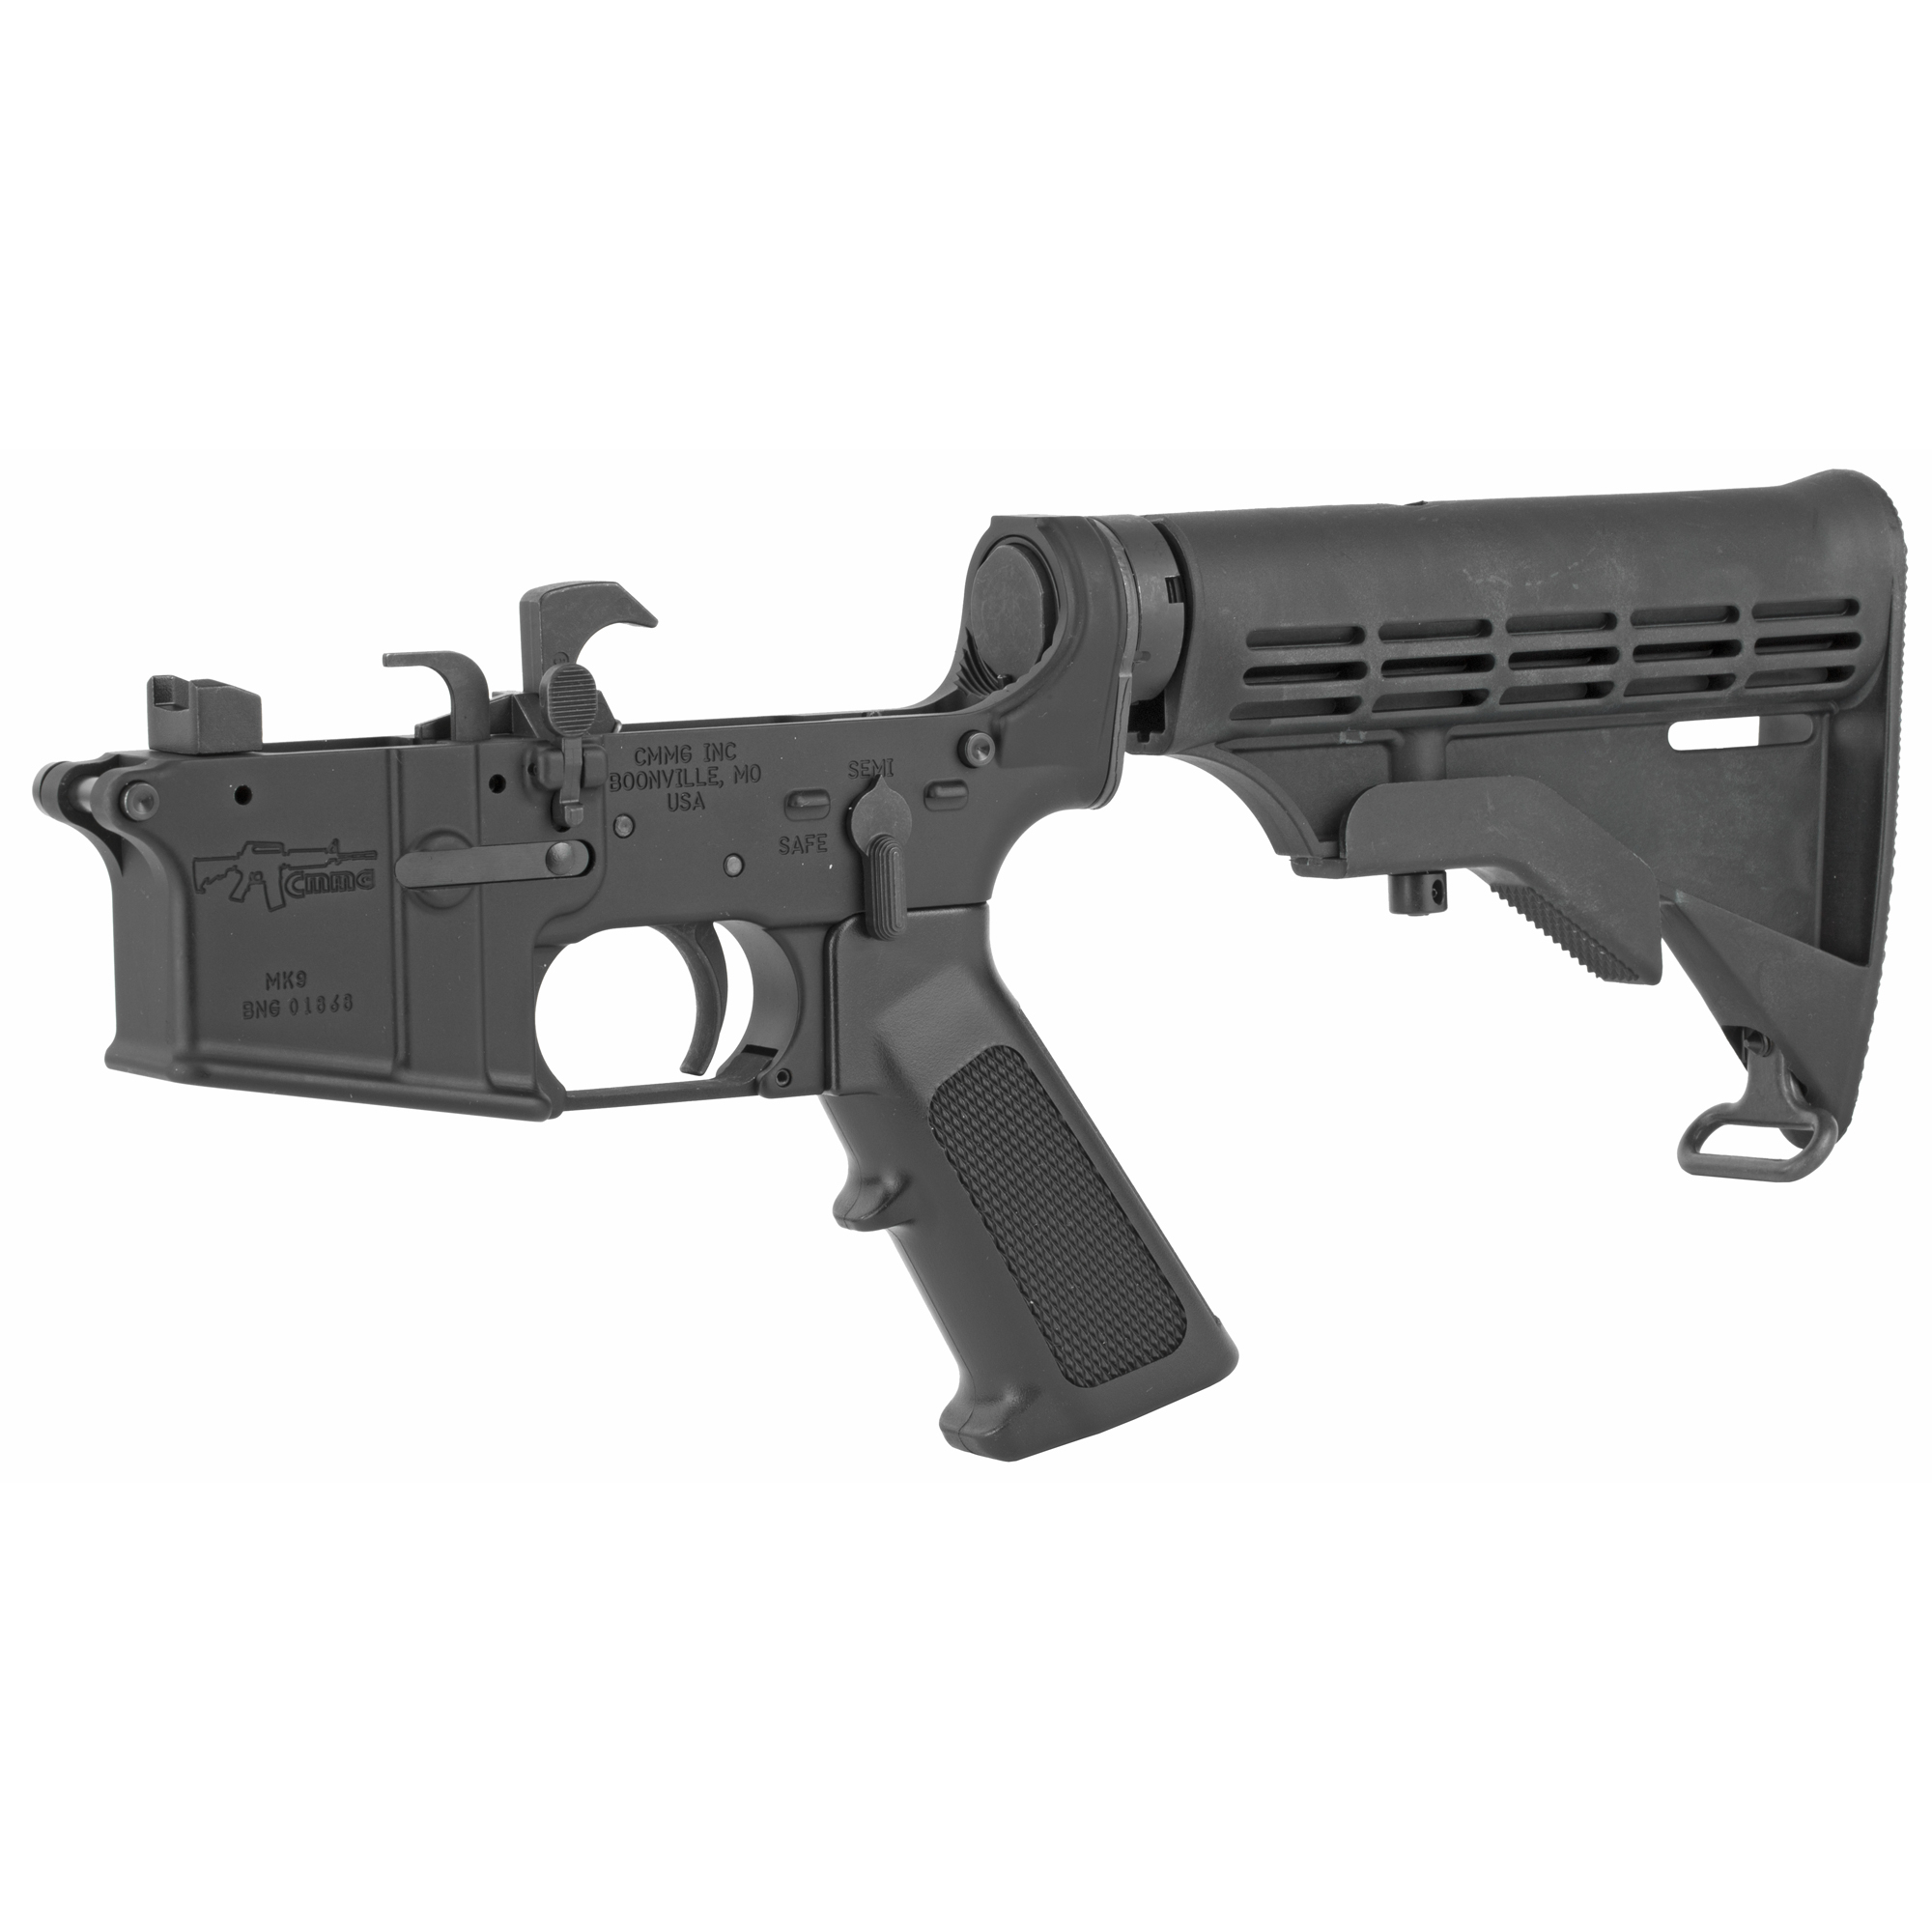 CMMG Resolute 100 Complete Lower Receiver 9MM - Black-img-2